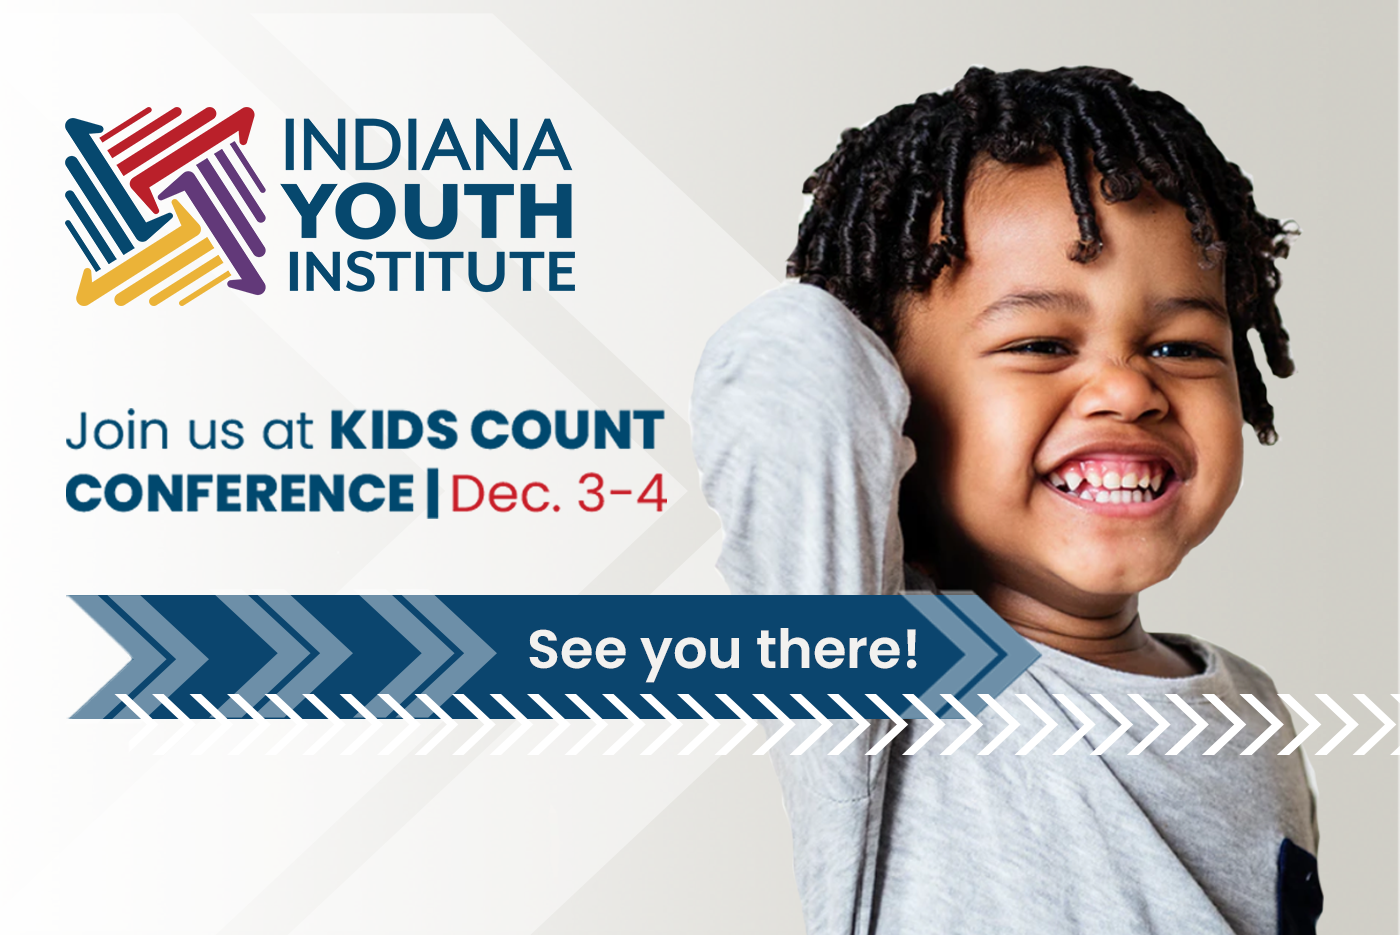 featured image for Youth services community to gather for Indiana Youth Institute's KIDS COUNT® Conference